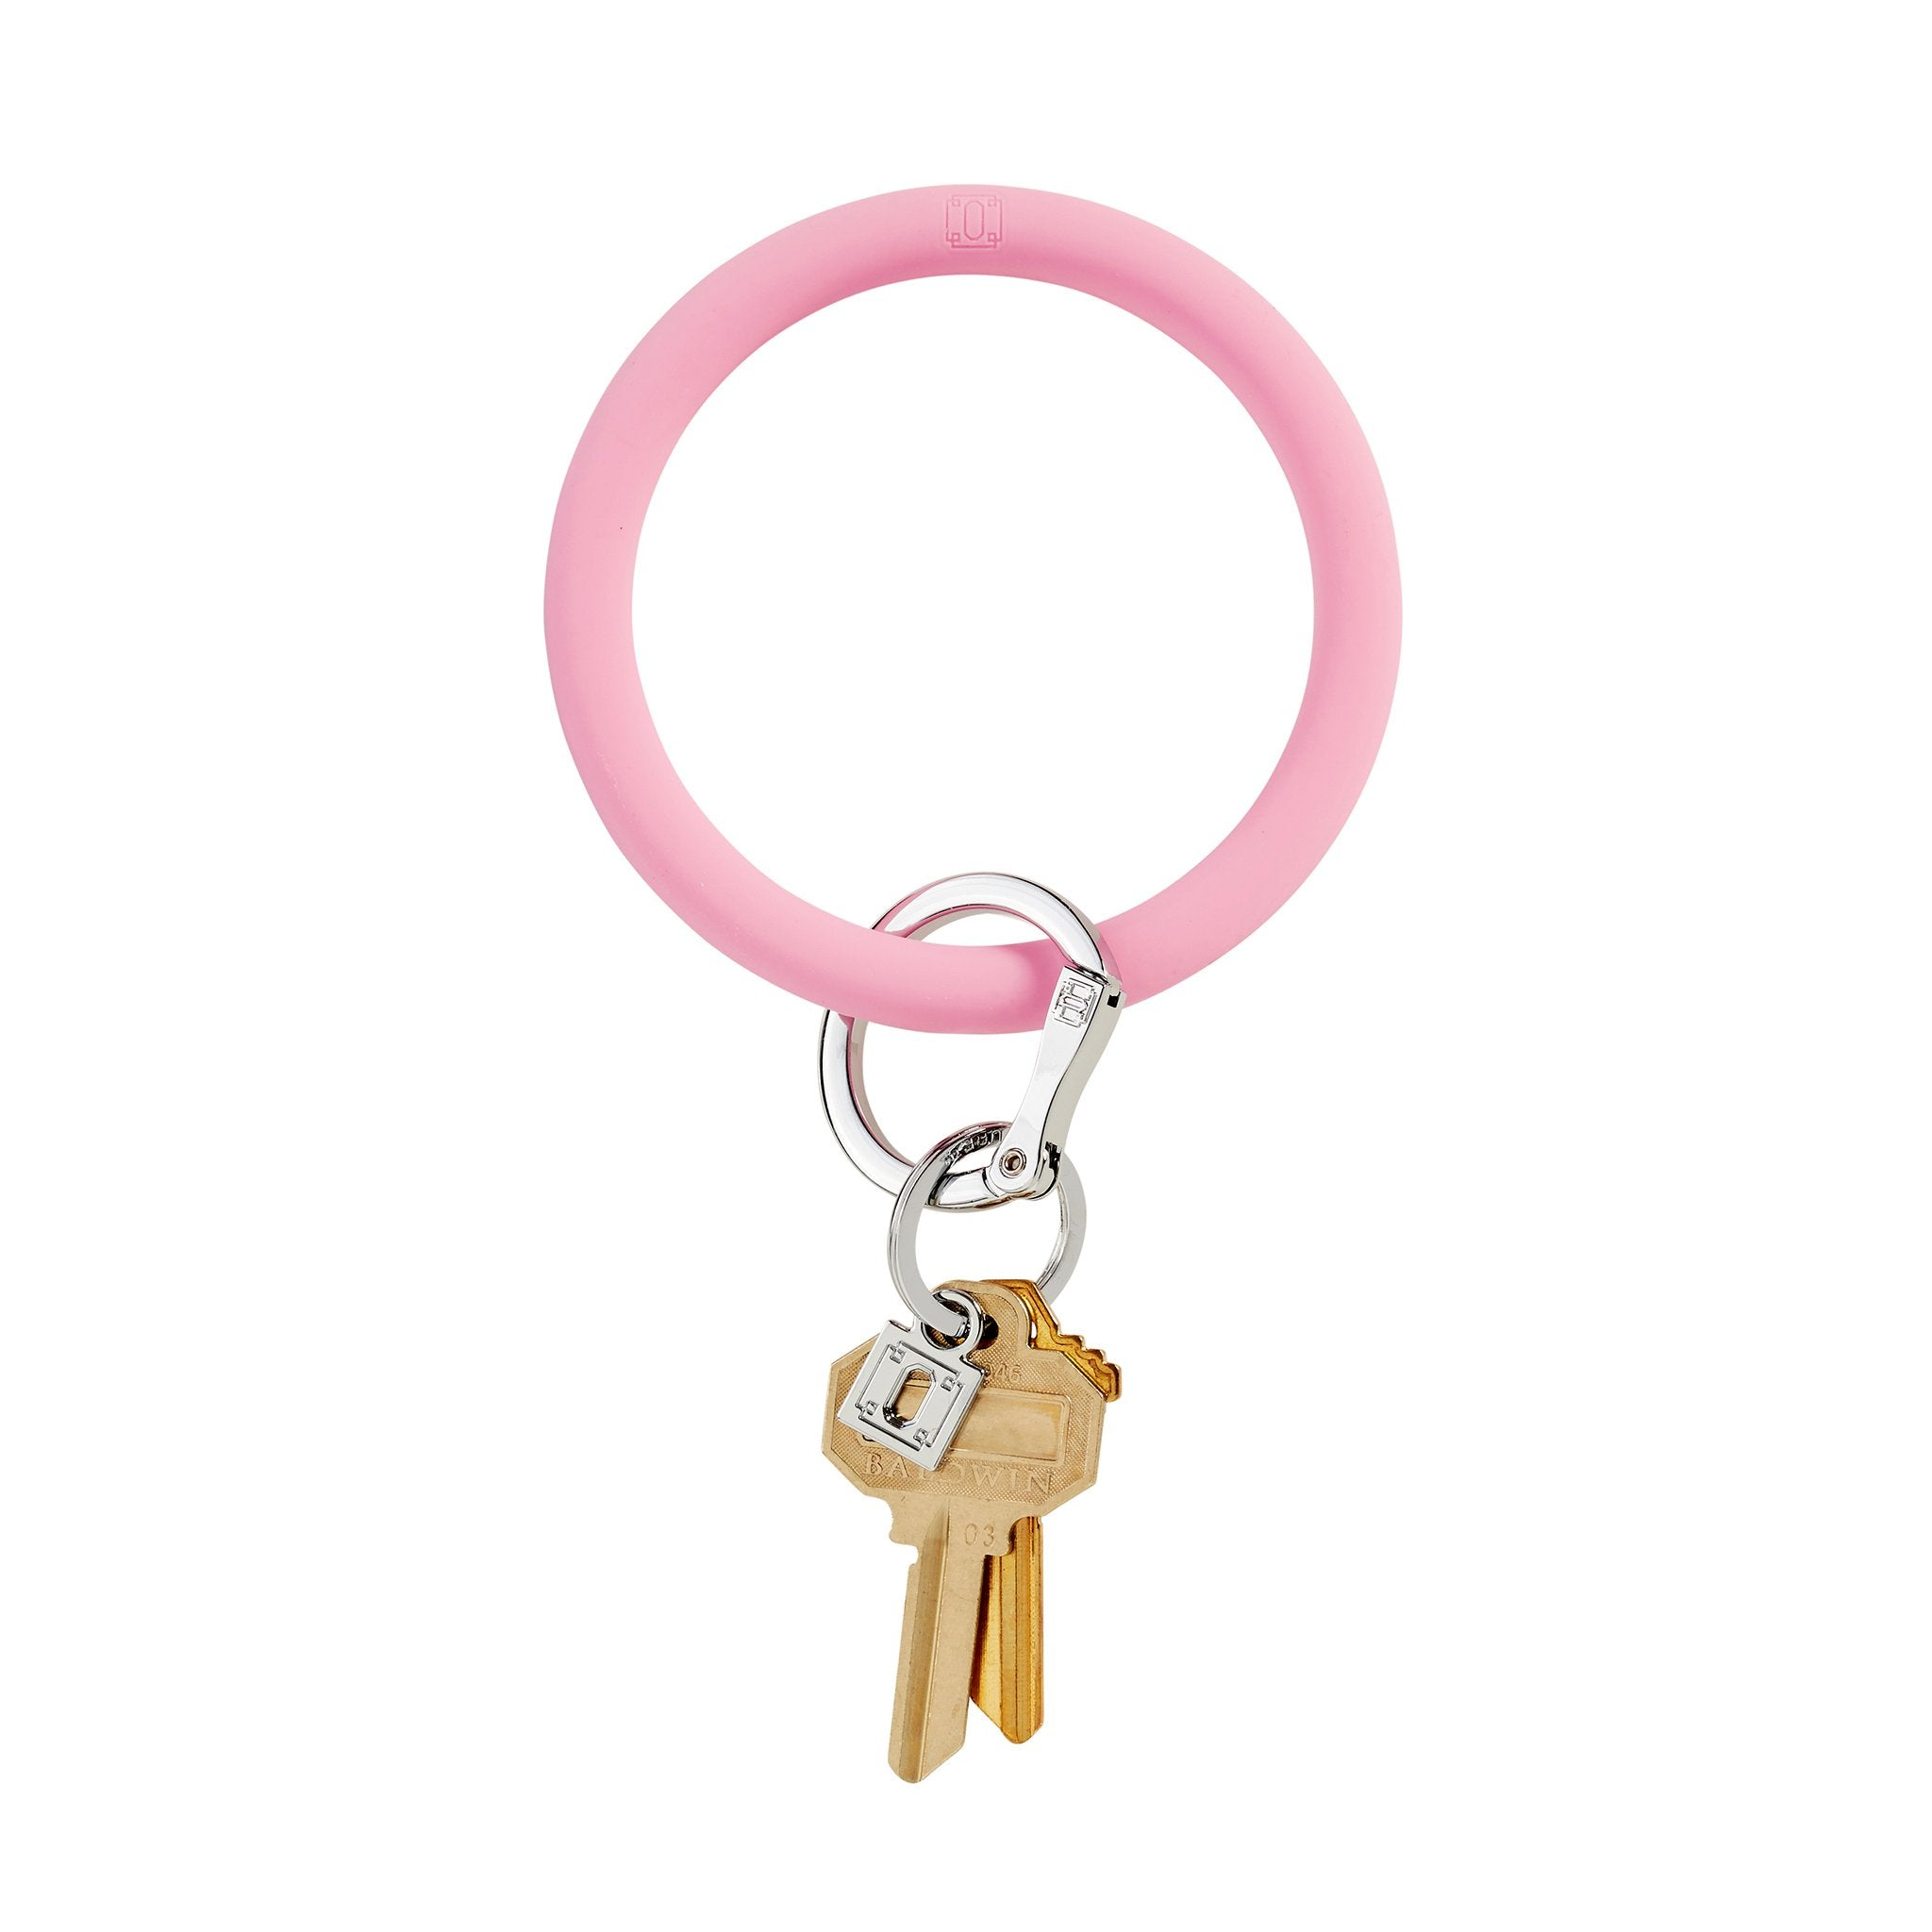 Silicone O-Venture Key Ring - Light Pink